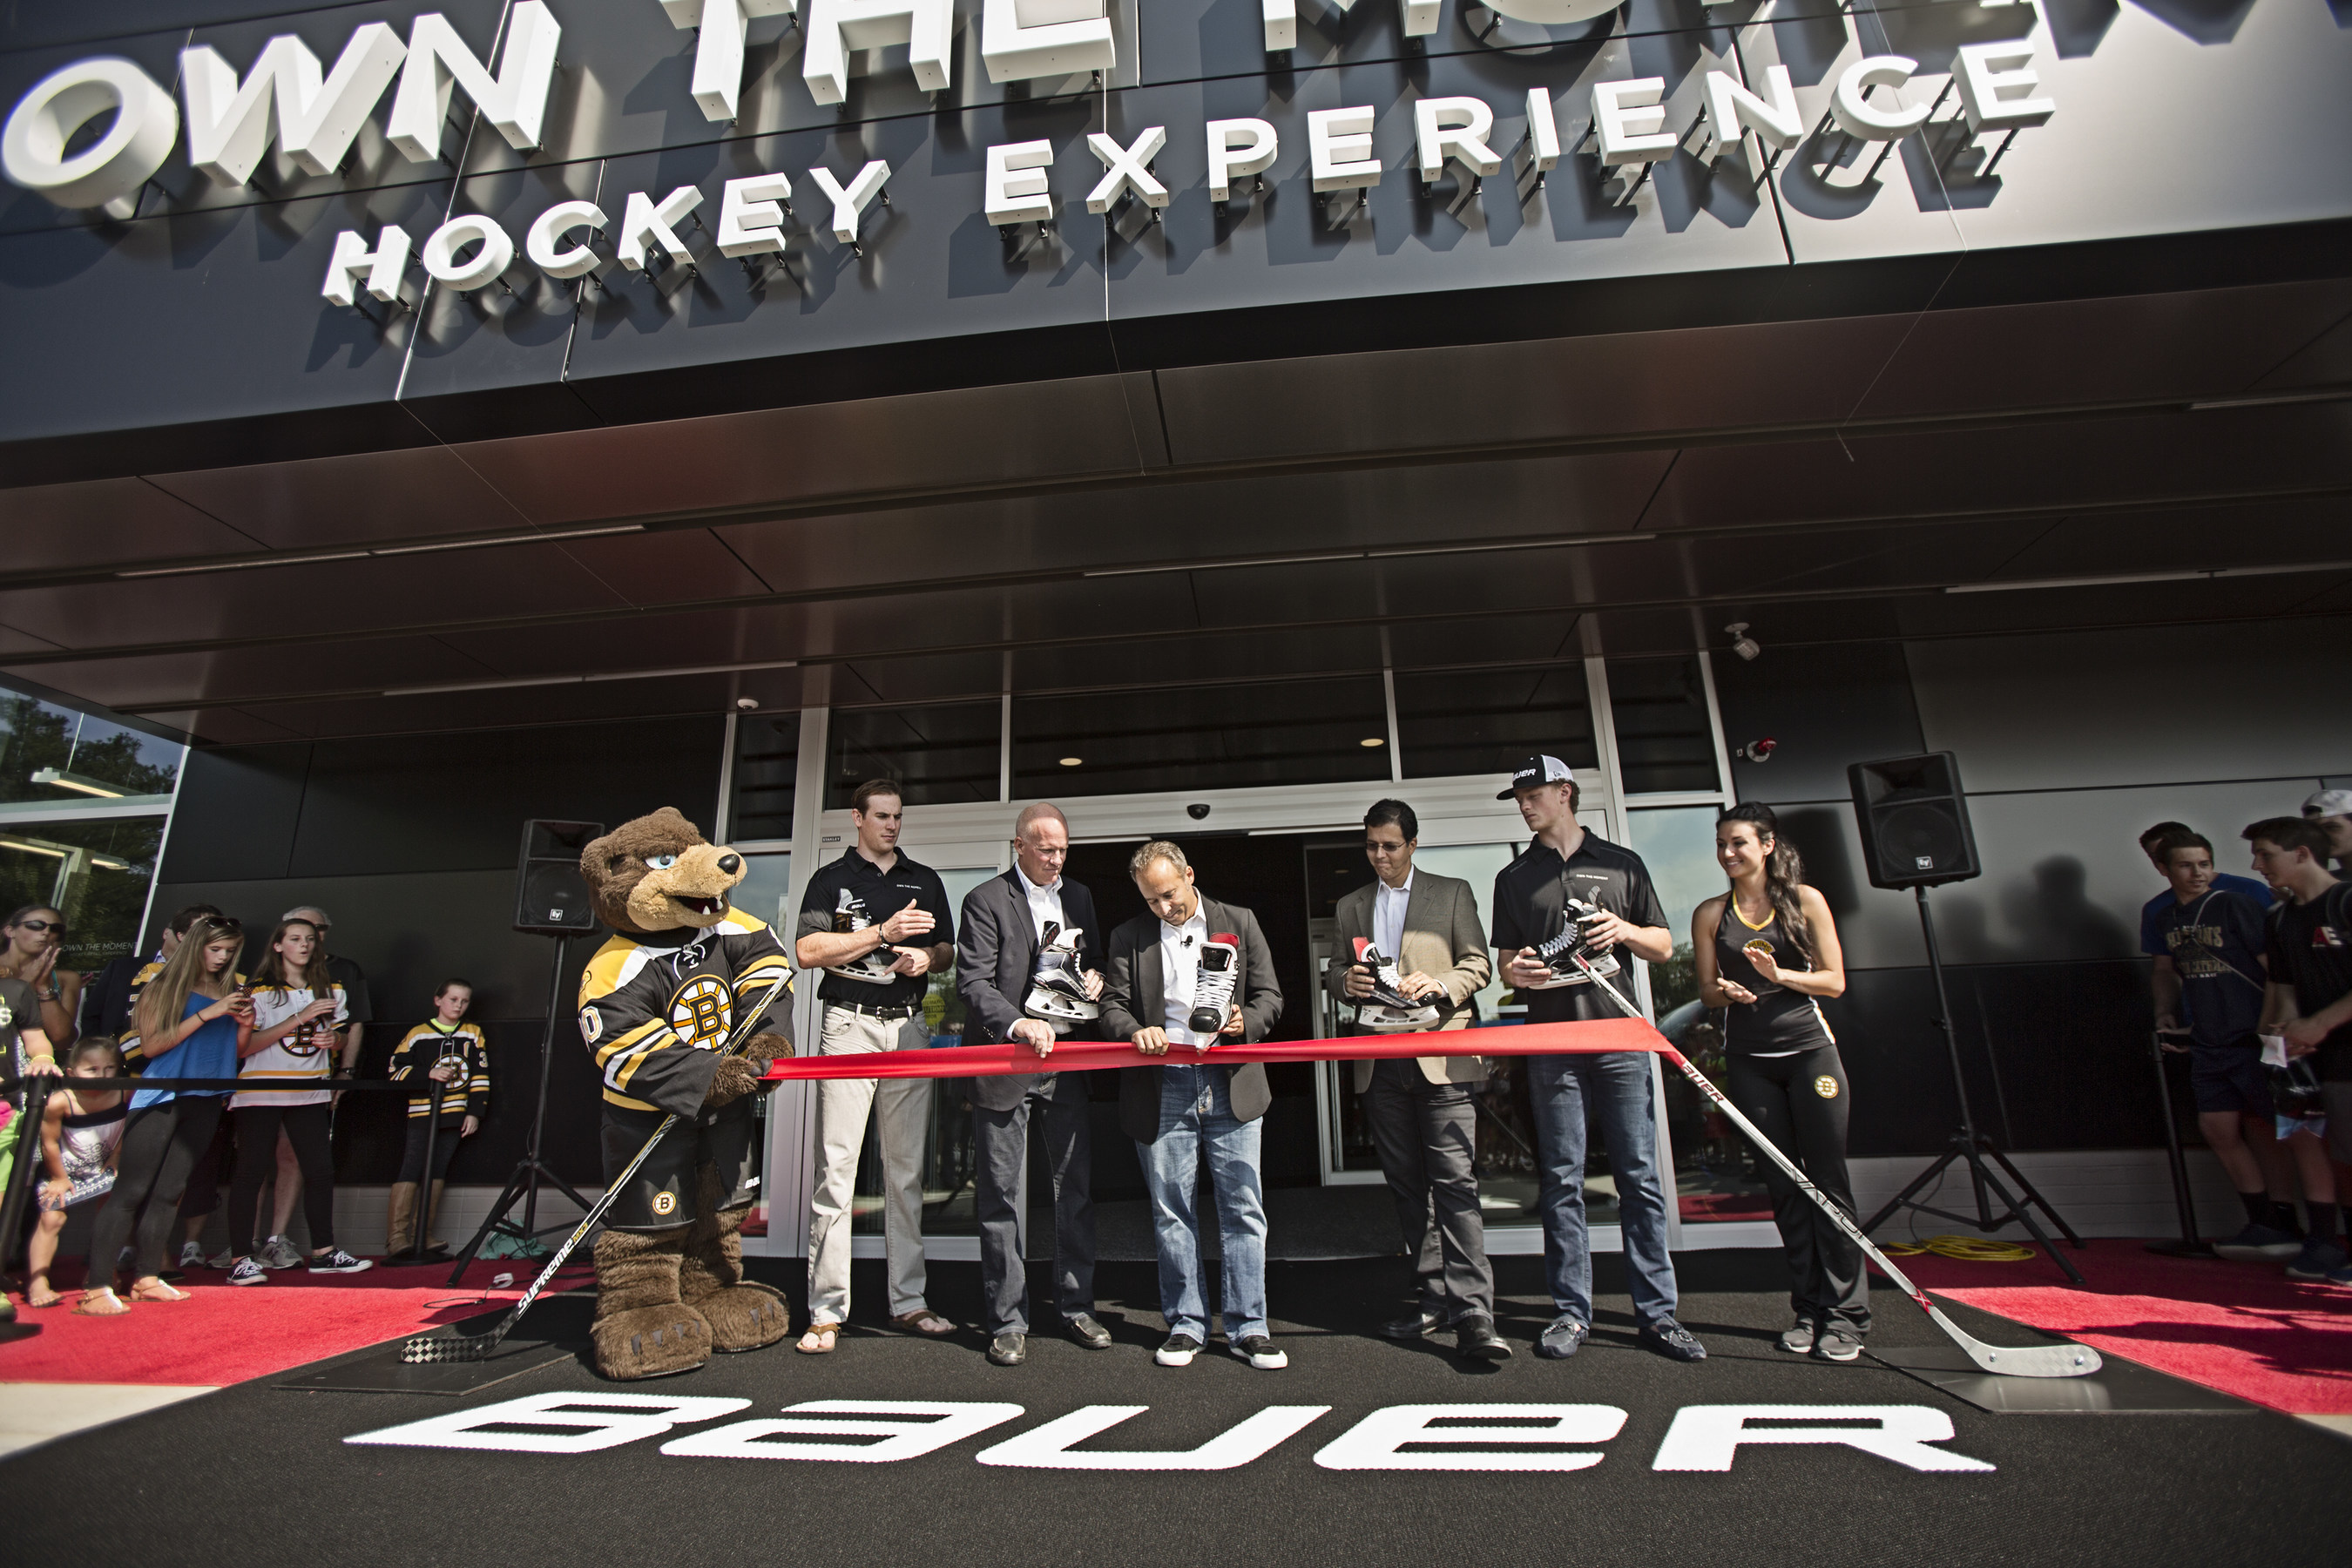 Buffalo Sabre Jack Eichel, and Boston Bruin Jimmy Hayes look on as Performance Sports Group CEO Kevin Davis cuts the ribbon at the grand opening of the Bauer Hockey OWN THE MOMENT Hockey Experience